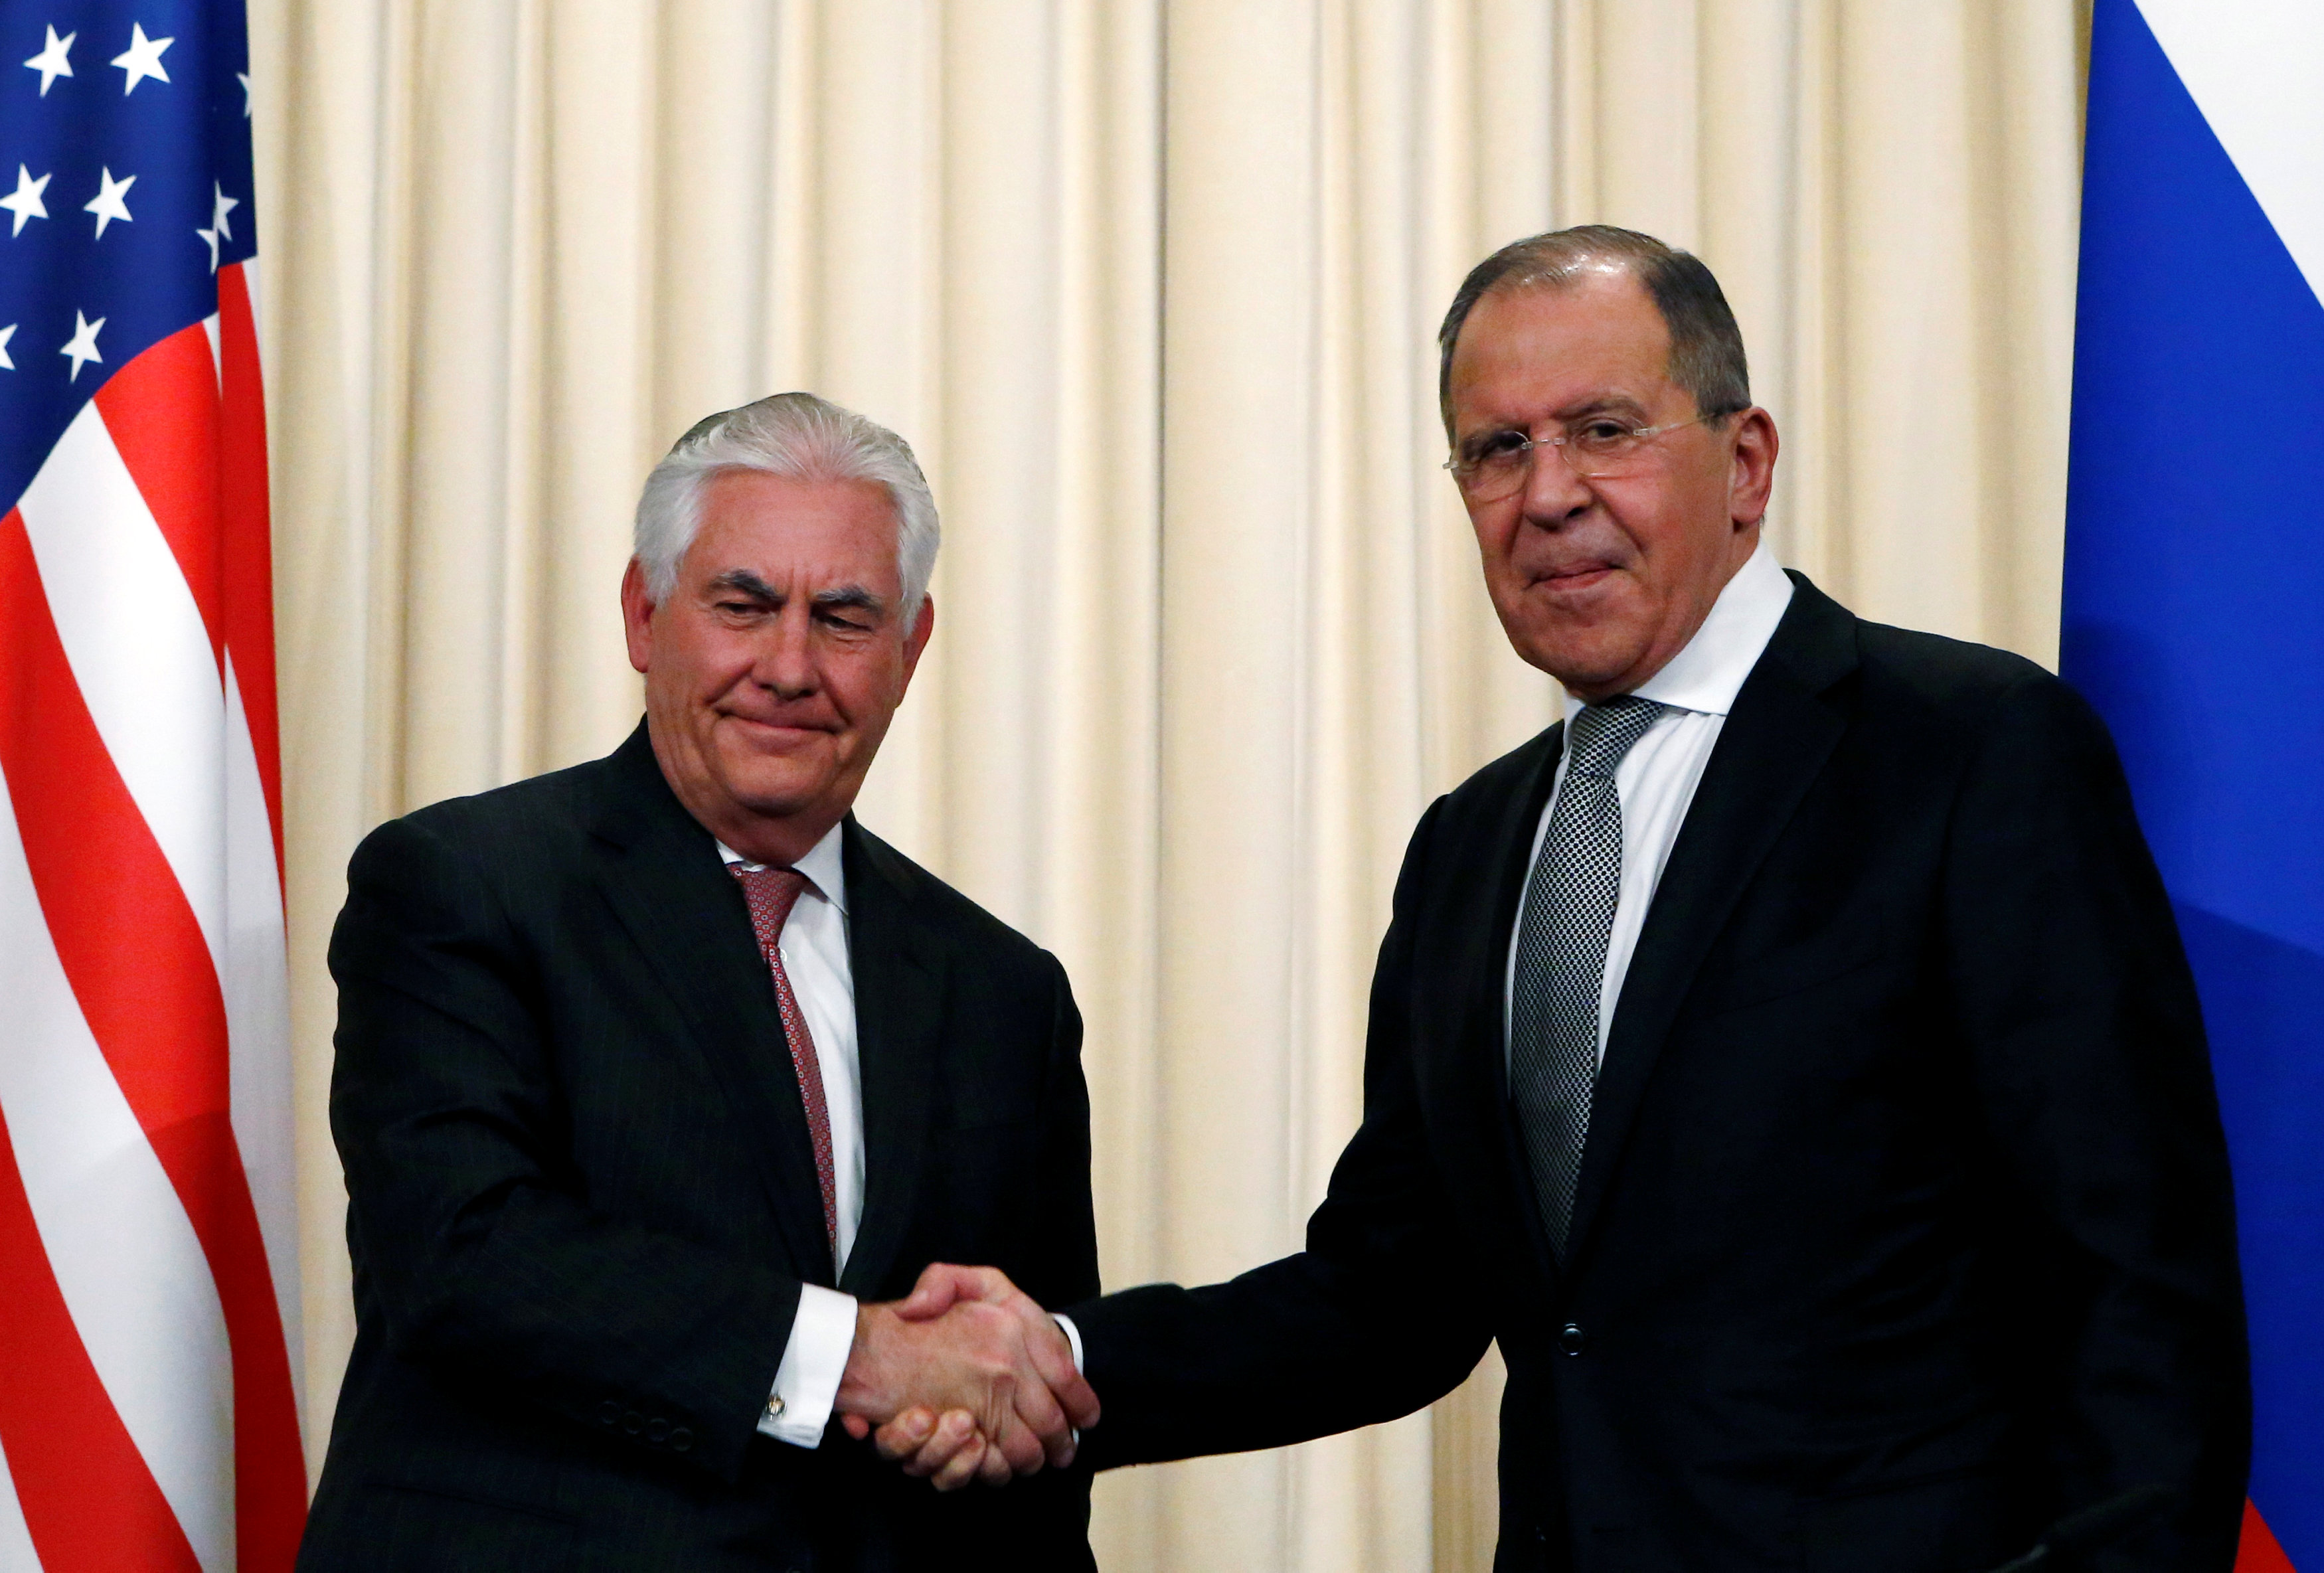 Russian Foreign Minister Sergei Lavrov shakes hands with U.S. Secretary of State Rex Tillerson during a news conference following their talks in Moscow, Russia,